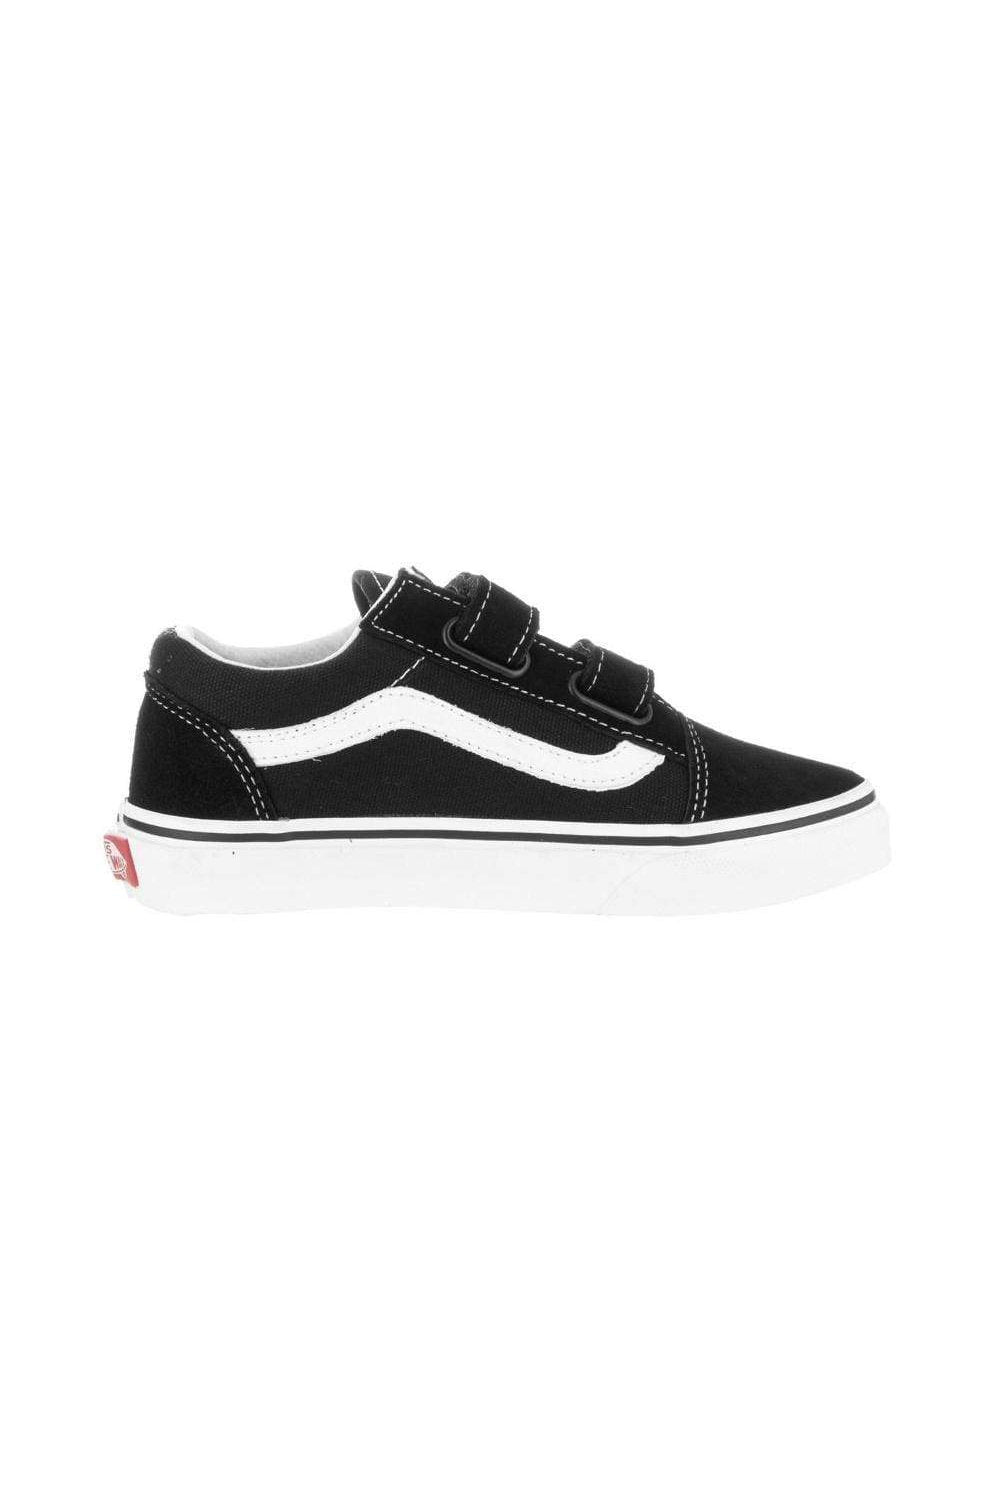 Vans Old Skool Velcro Youth Shoe